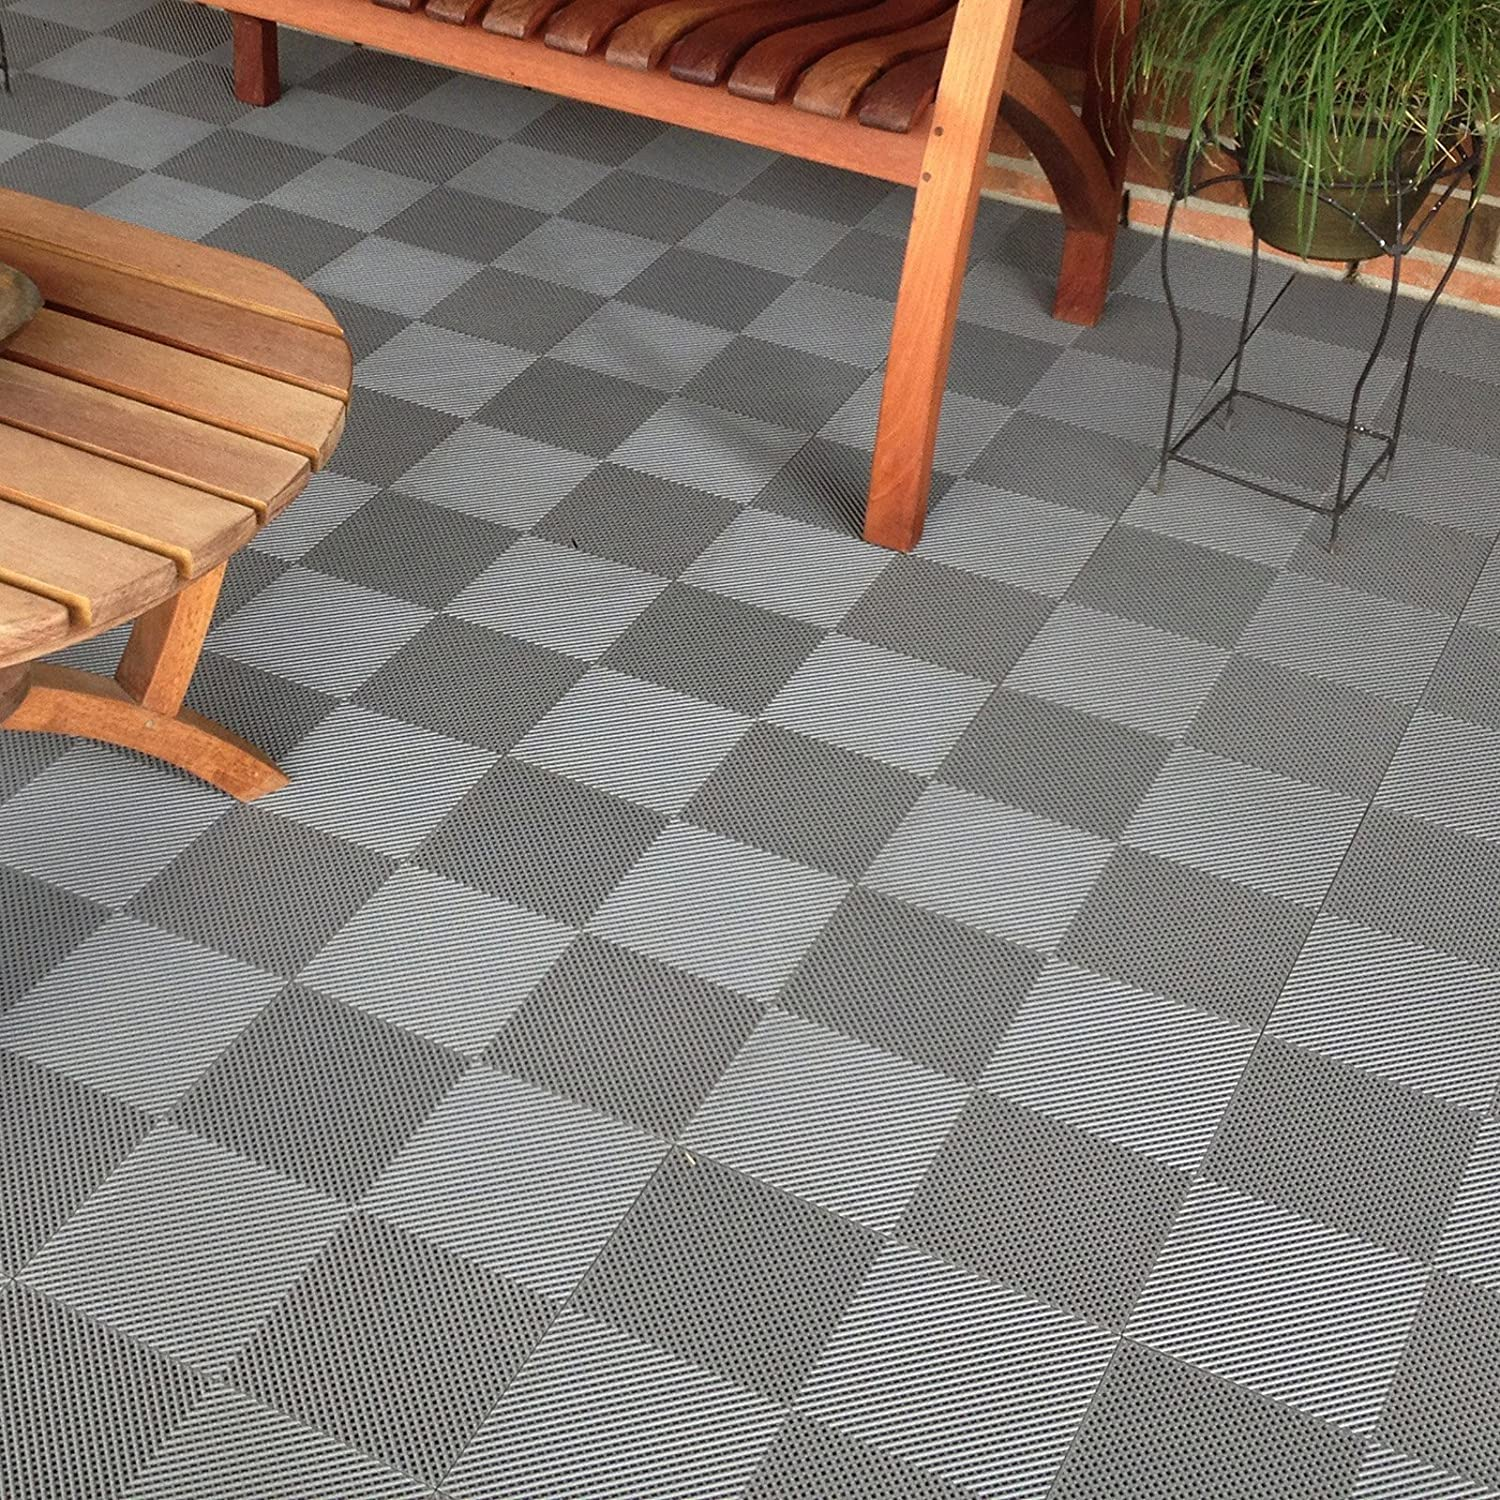 Amazon blocktile b2us4630 deck and patio flooring amazon blocktile b2us4630 deck and patio flooring interlocking tiles perforated pack gray 30 pack home improvement dailygadgetfo Gallery